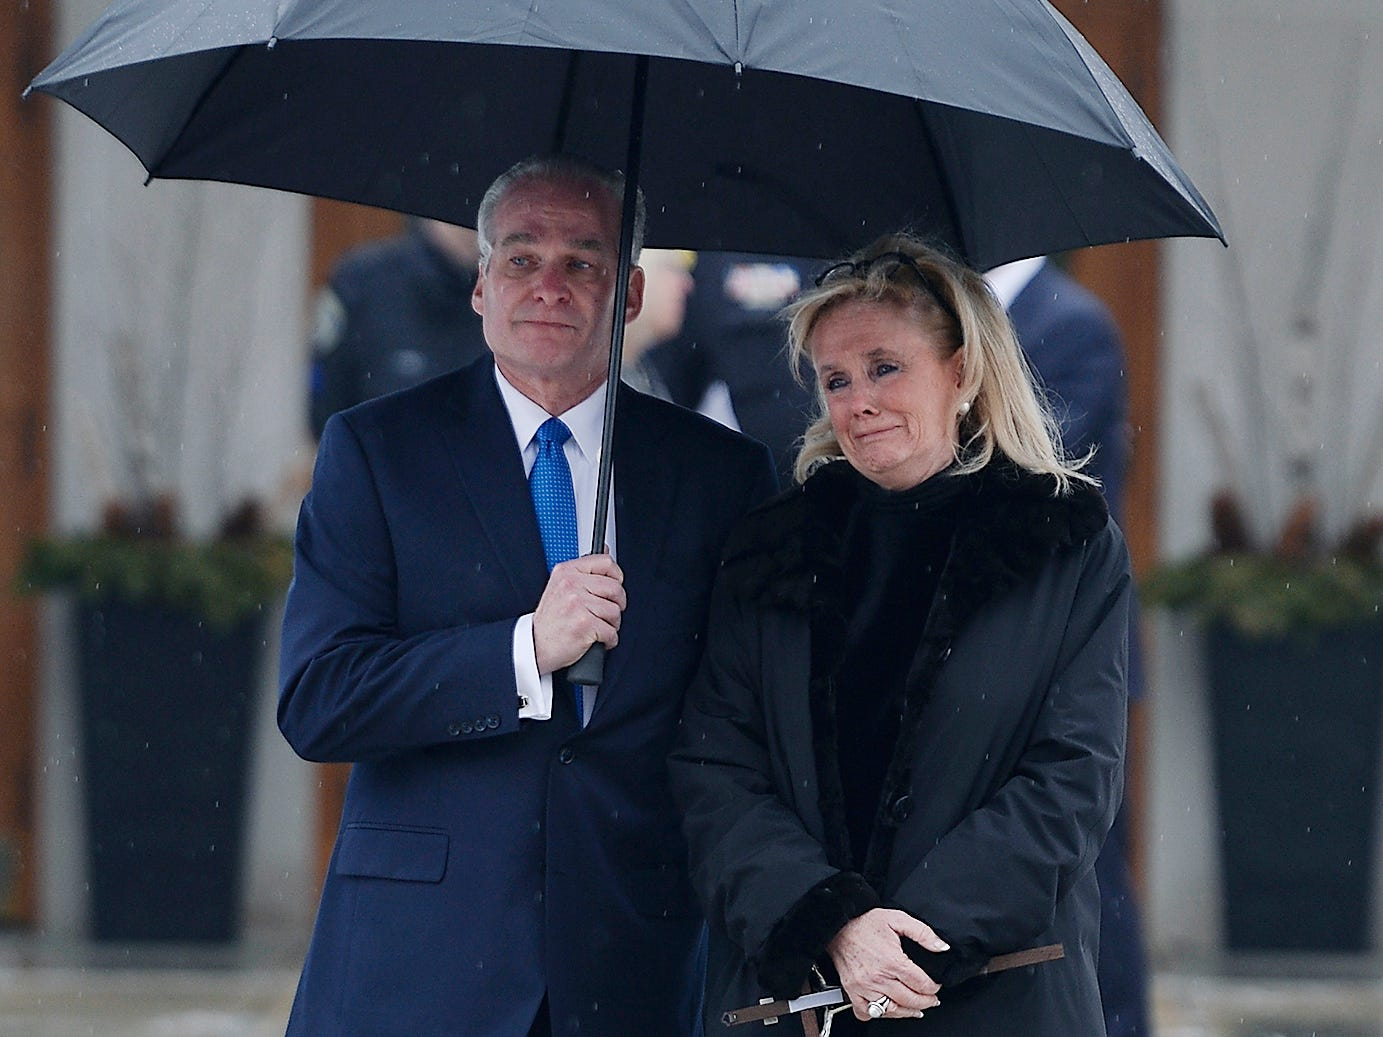 Funeral Director Alan Laumer of Verheyden Funeral Home holds a umbrella for Debbie Dingell as she watches her husband John D. Dingell's casket loaded into the hearse after the funeral.